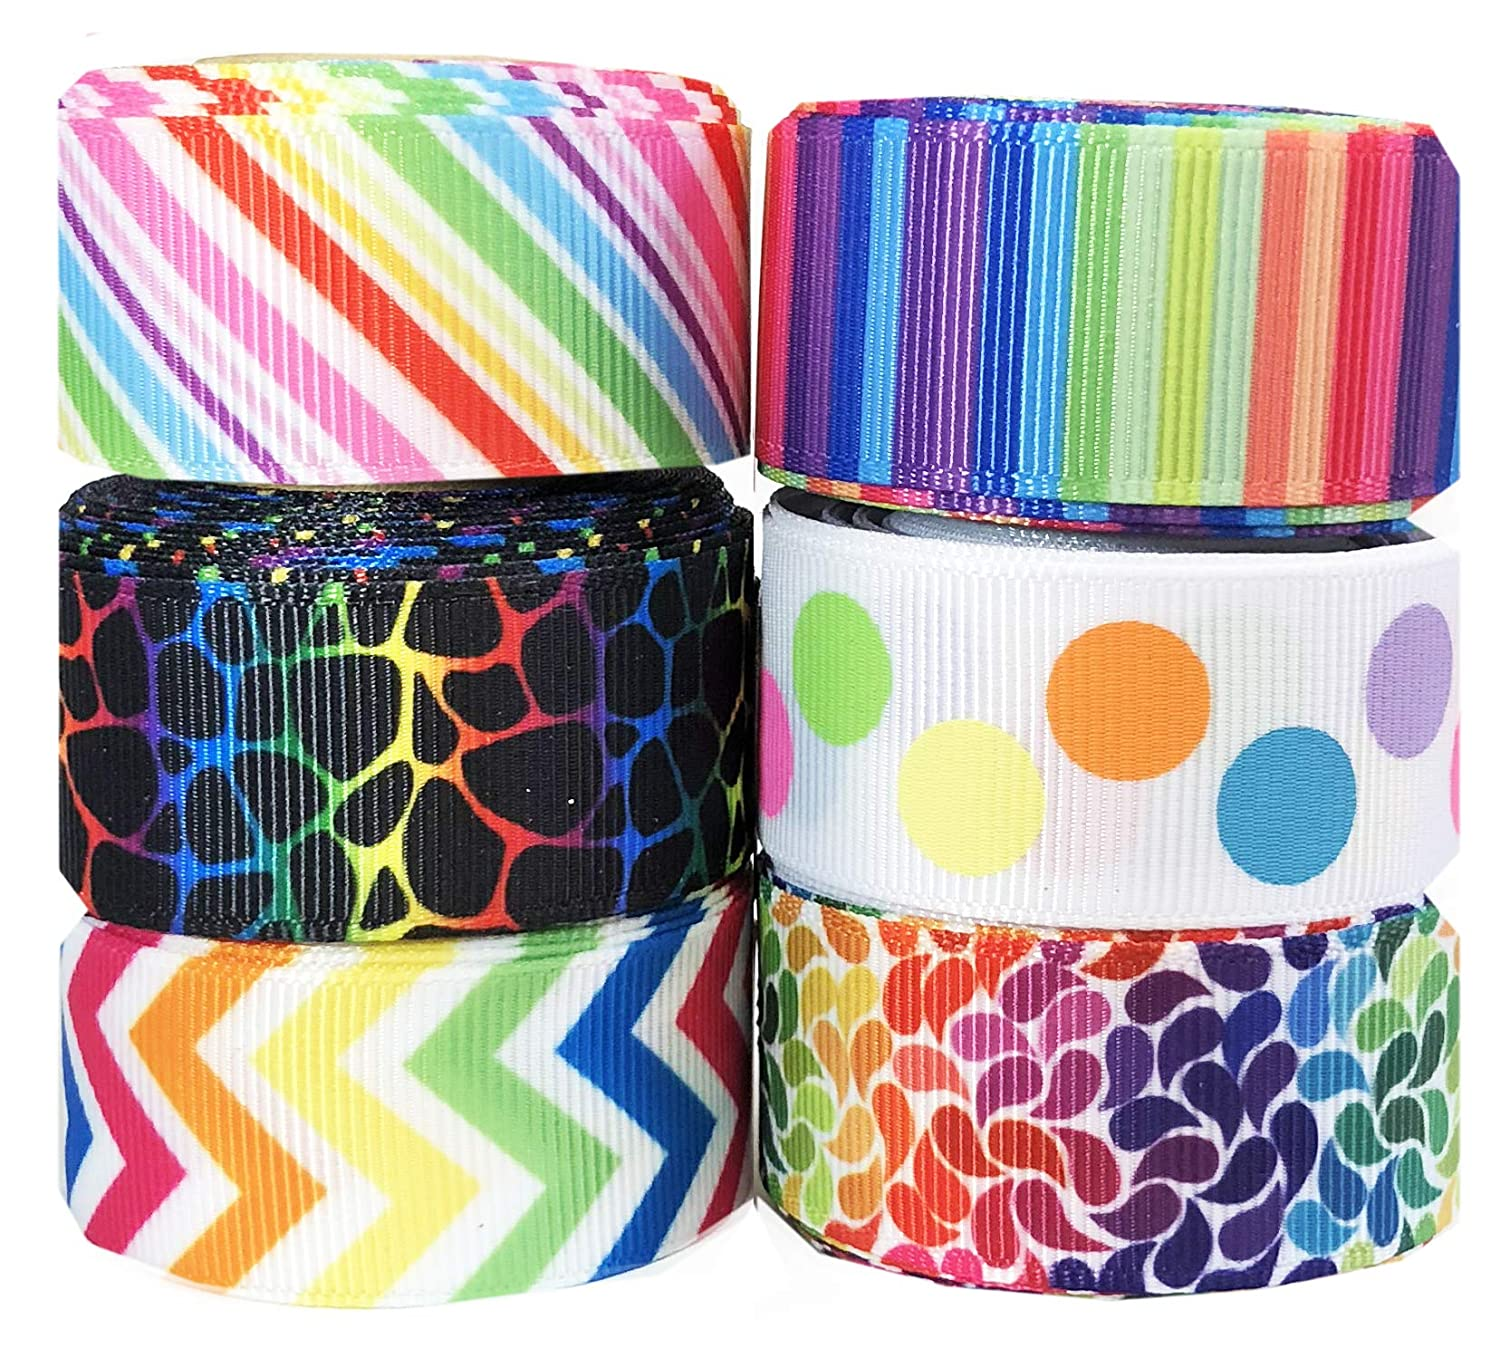 Rainbow Ribbon for Crafts - Hipgirl 30yd 7/8 Grosgrain Ribbon Set For Gift Package Wrapping, Hair Bow Clips & Accessories Making, Crafting, Sewing, Wedding Decor, (30yd (6x5yd) 7/8 Ribbon-Rainbow) 4336858433